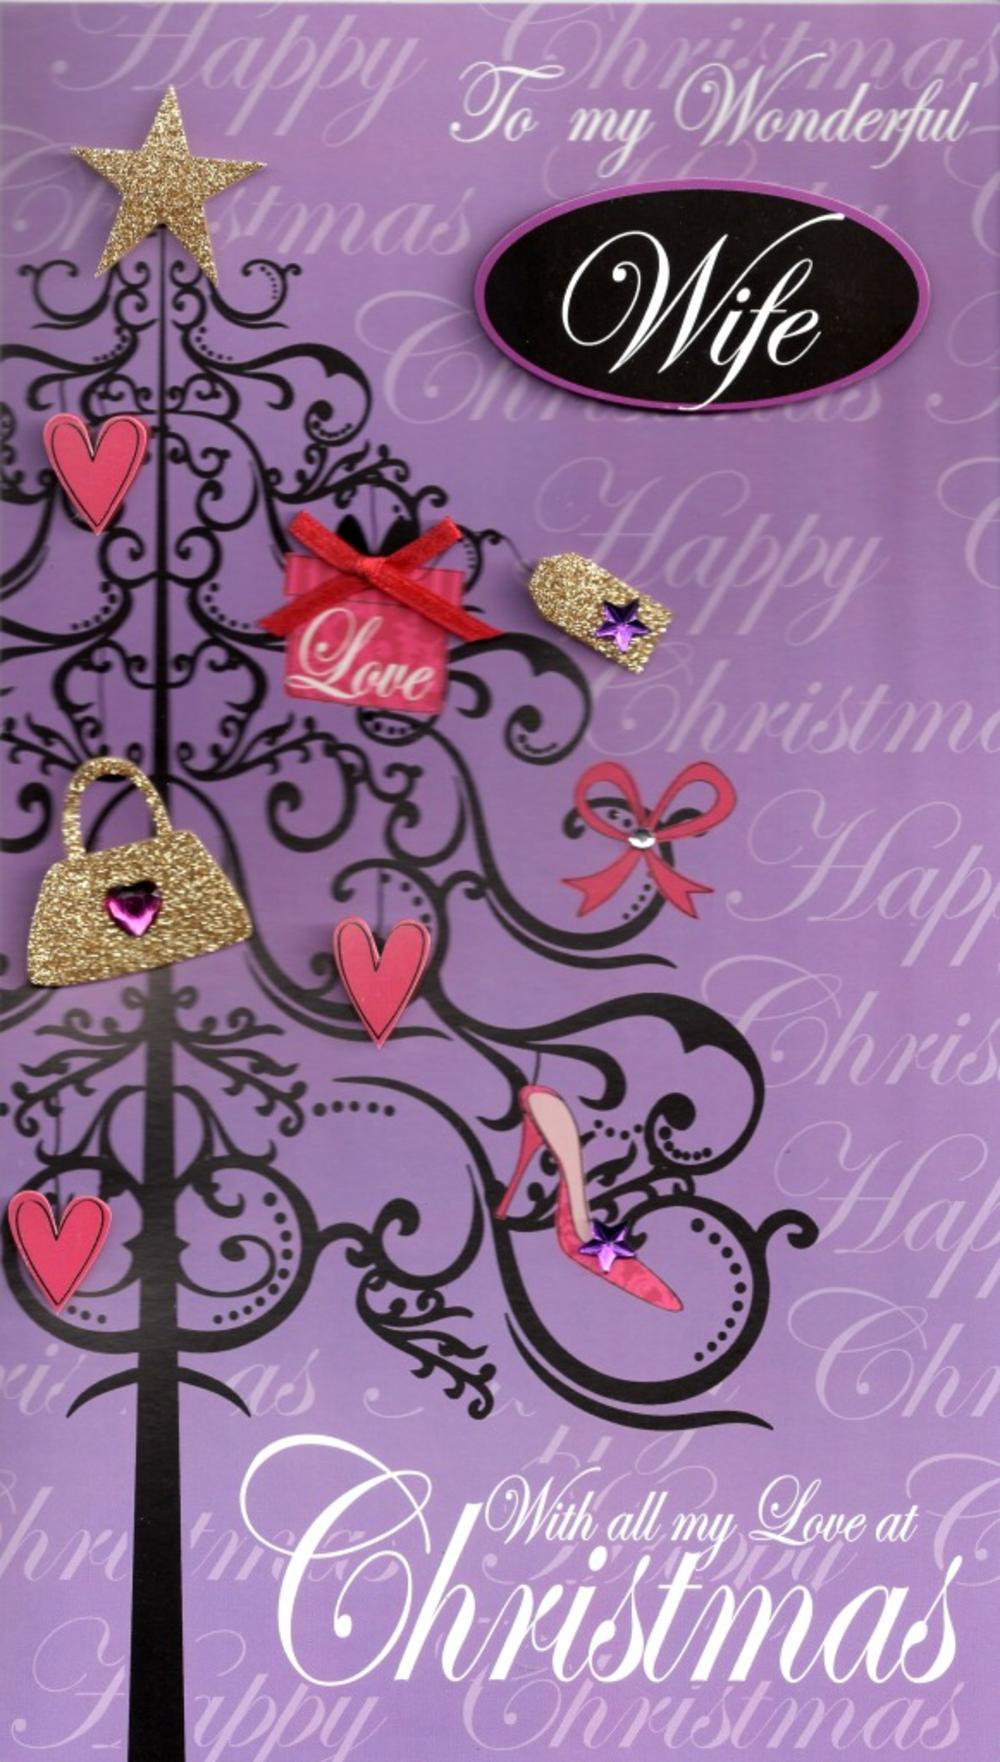 Wife Large Embellished Christmas Card Nice Message